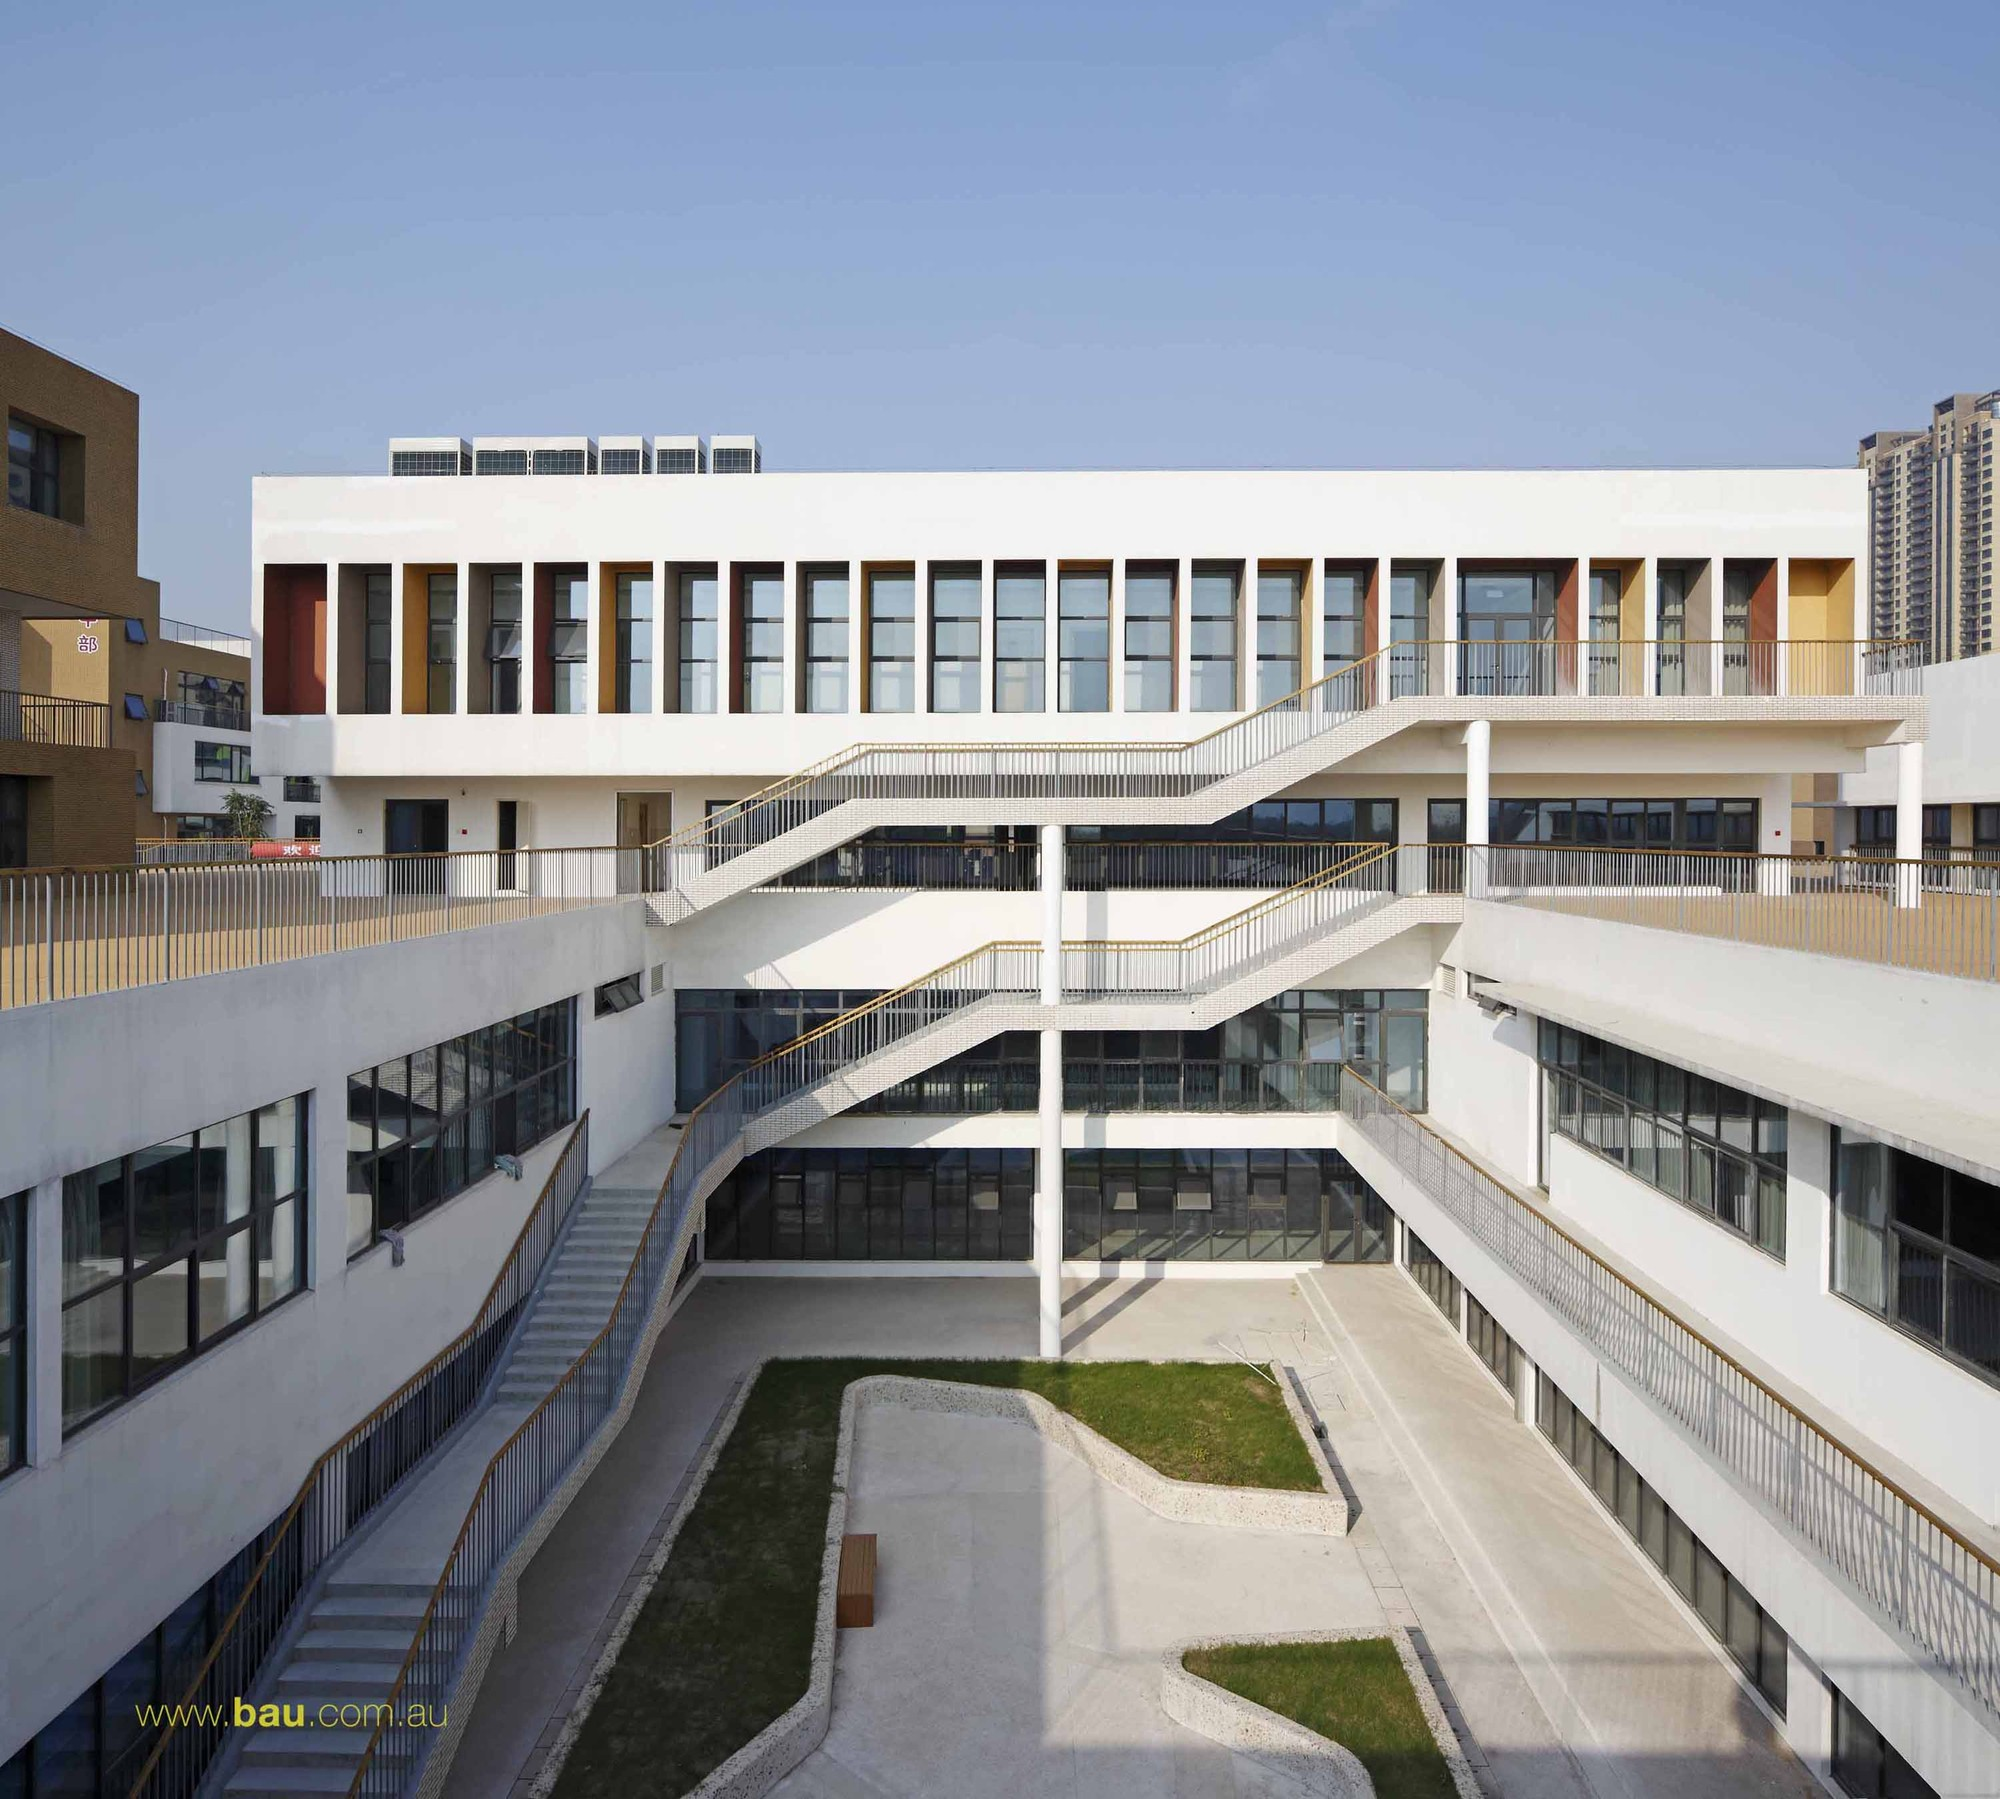 Jiangyin Primary & Secondary School / BAU Brearley Architects + Urbanists, © Shu He